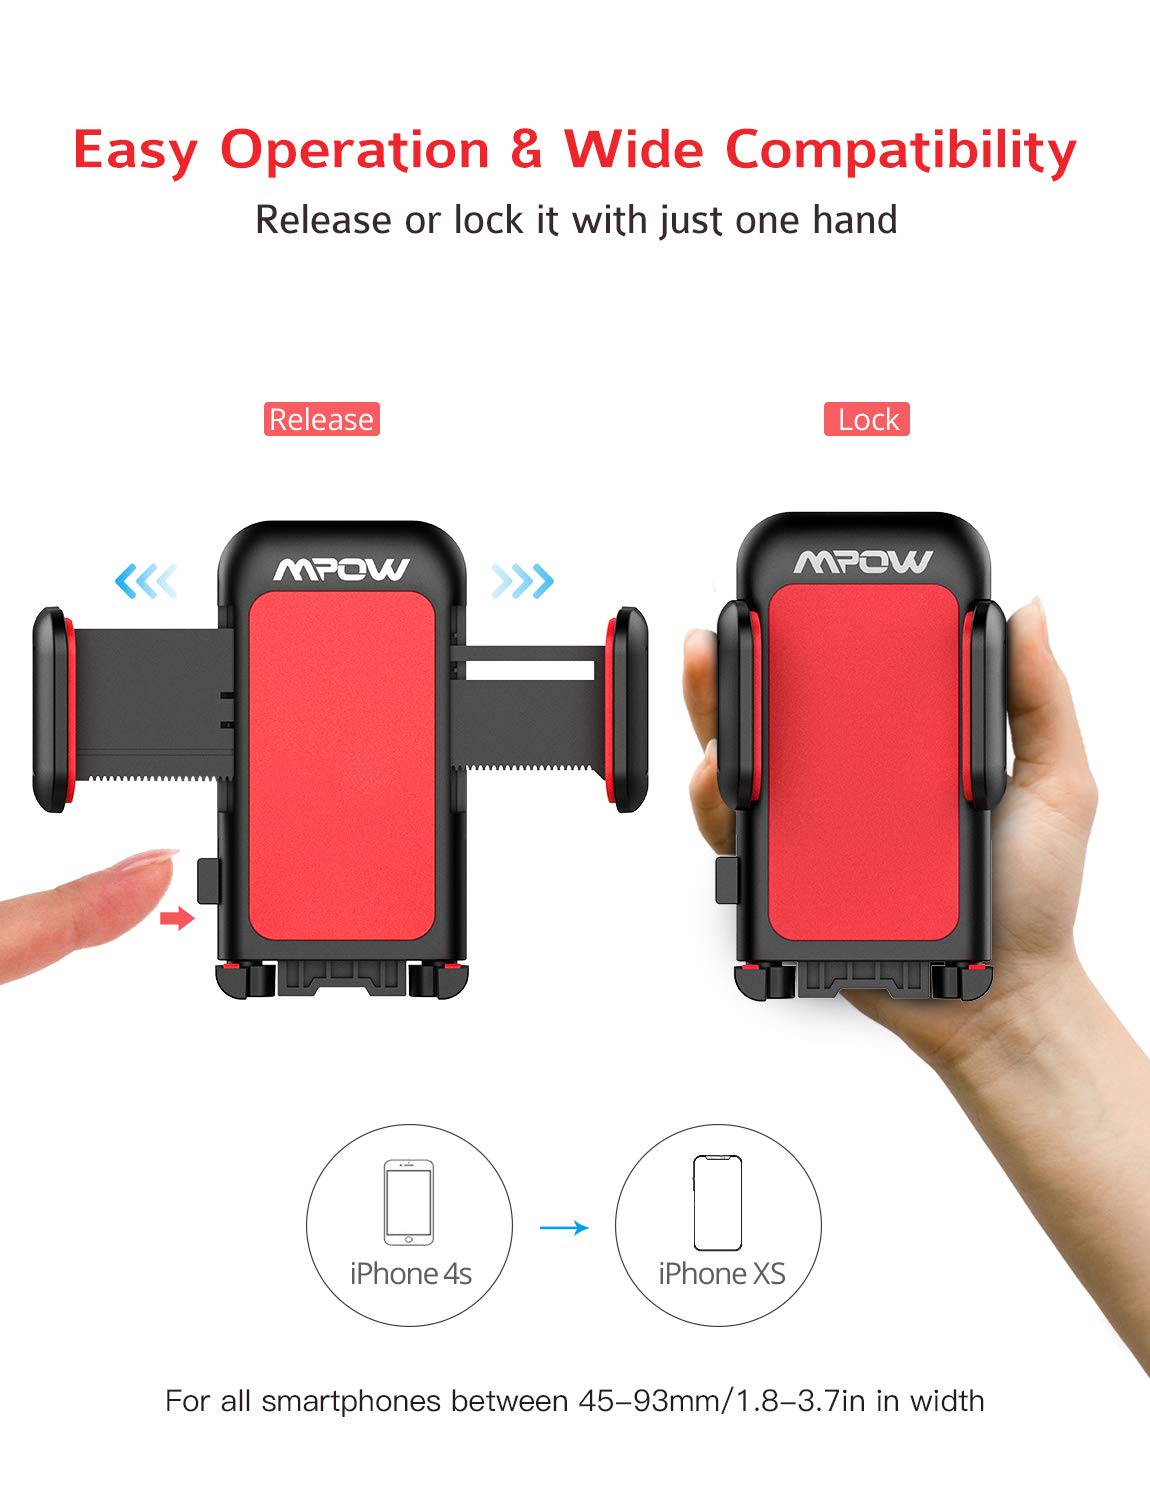 Mpow 051 Car Phone Mount, CD Slot Car Phone Holder, Car Mount with Three-Side Grips and One-Touch Design Compatible iPhone Xs MAX/XR/XS/X/8/8Plus, Galaxy S10/S10+/S10e/S9/S9+/N9/S8, Google, Huawei etc by Mpow (Image #6)